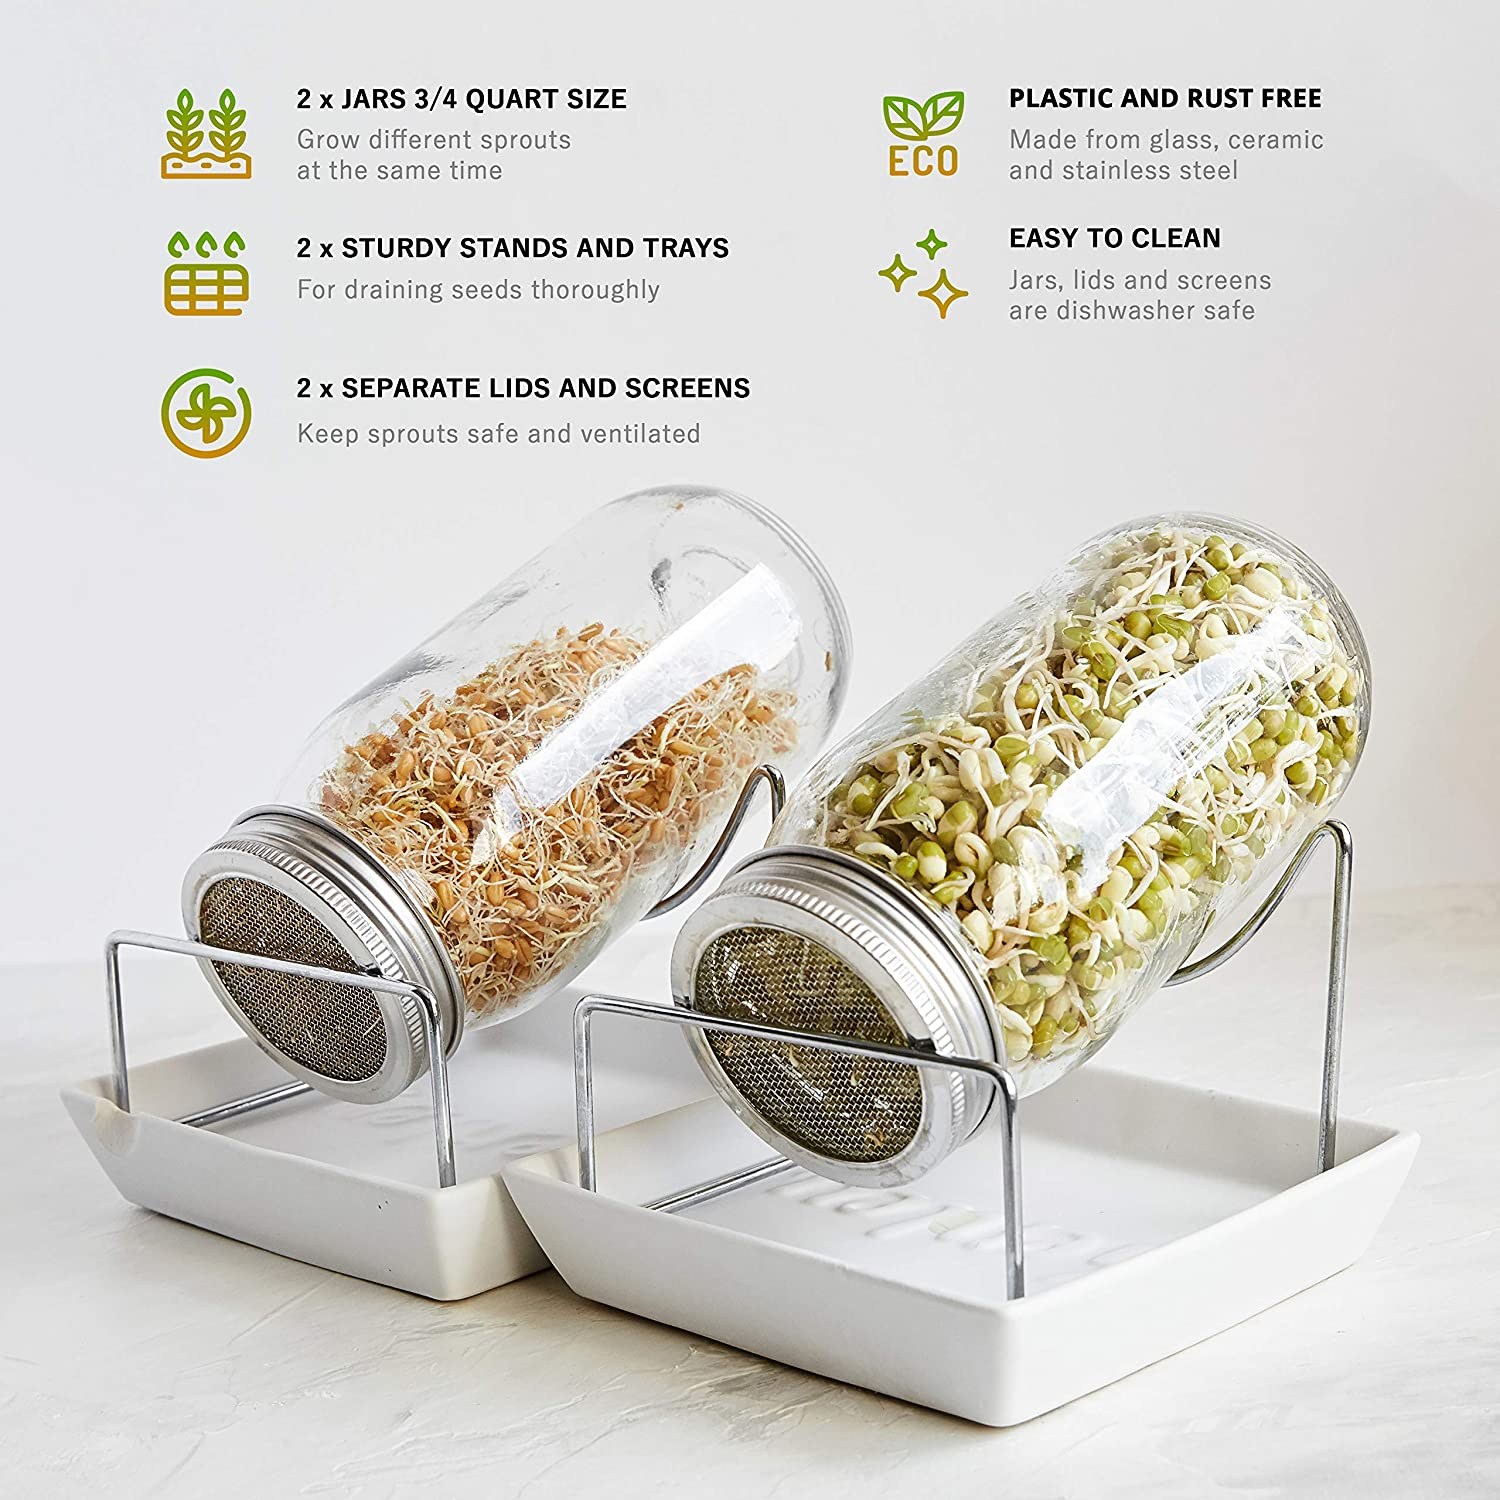 B07QNVXVXR Seed Sprouting Jar Kit - 2 Sprouter Mason Jars with Screen Lids Stands and Trays - Sprout Maker to Grow Your Own Broccoli Alfalfa Beans Microgreens Sprouts - Seeds Germination Growing Kit BPA Free 81eHcCfjo2L